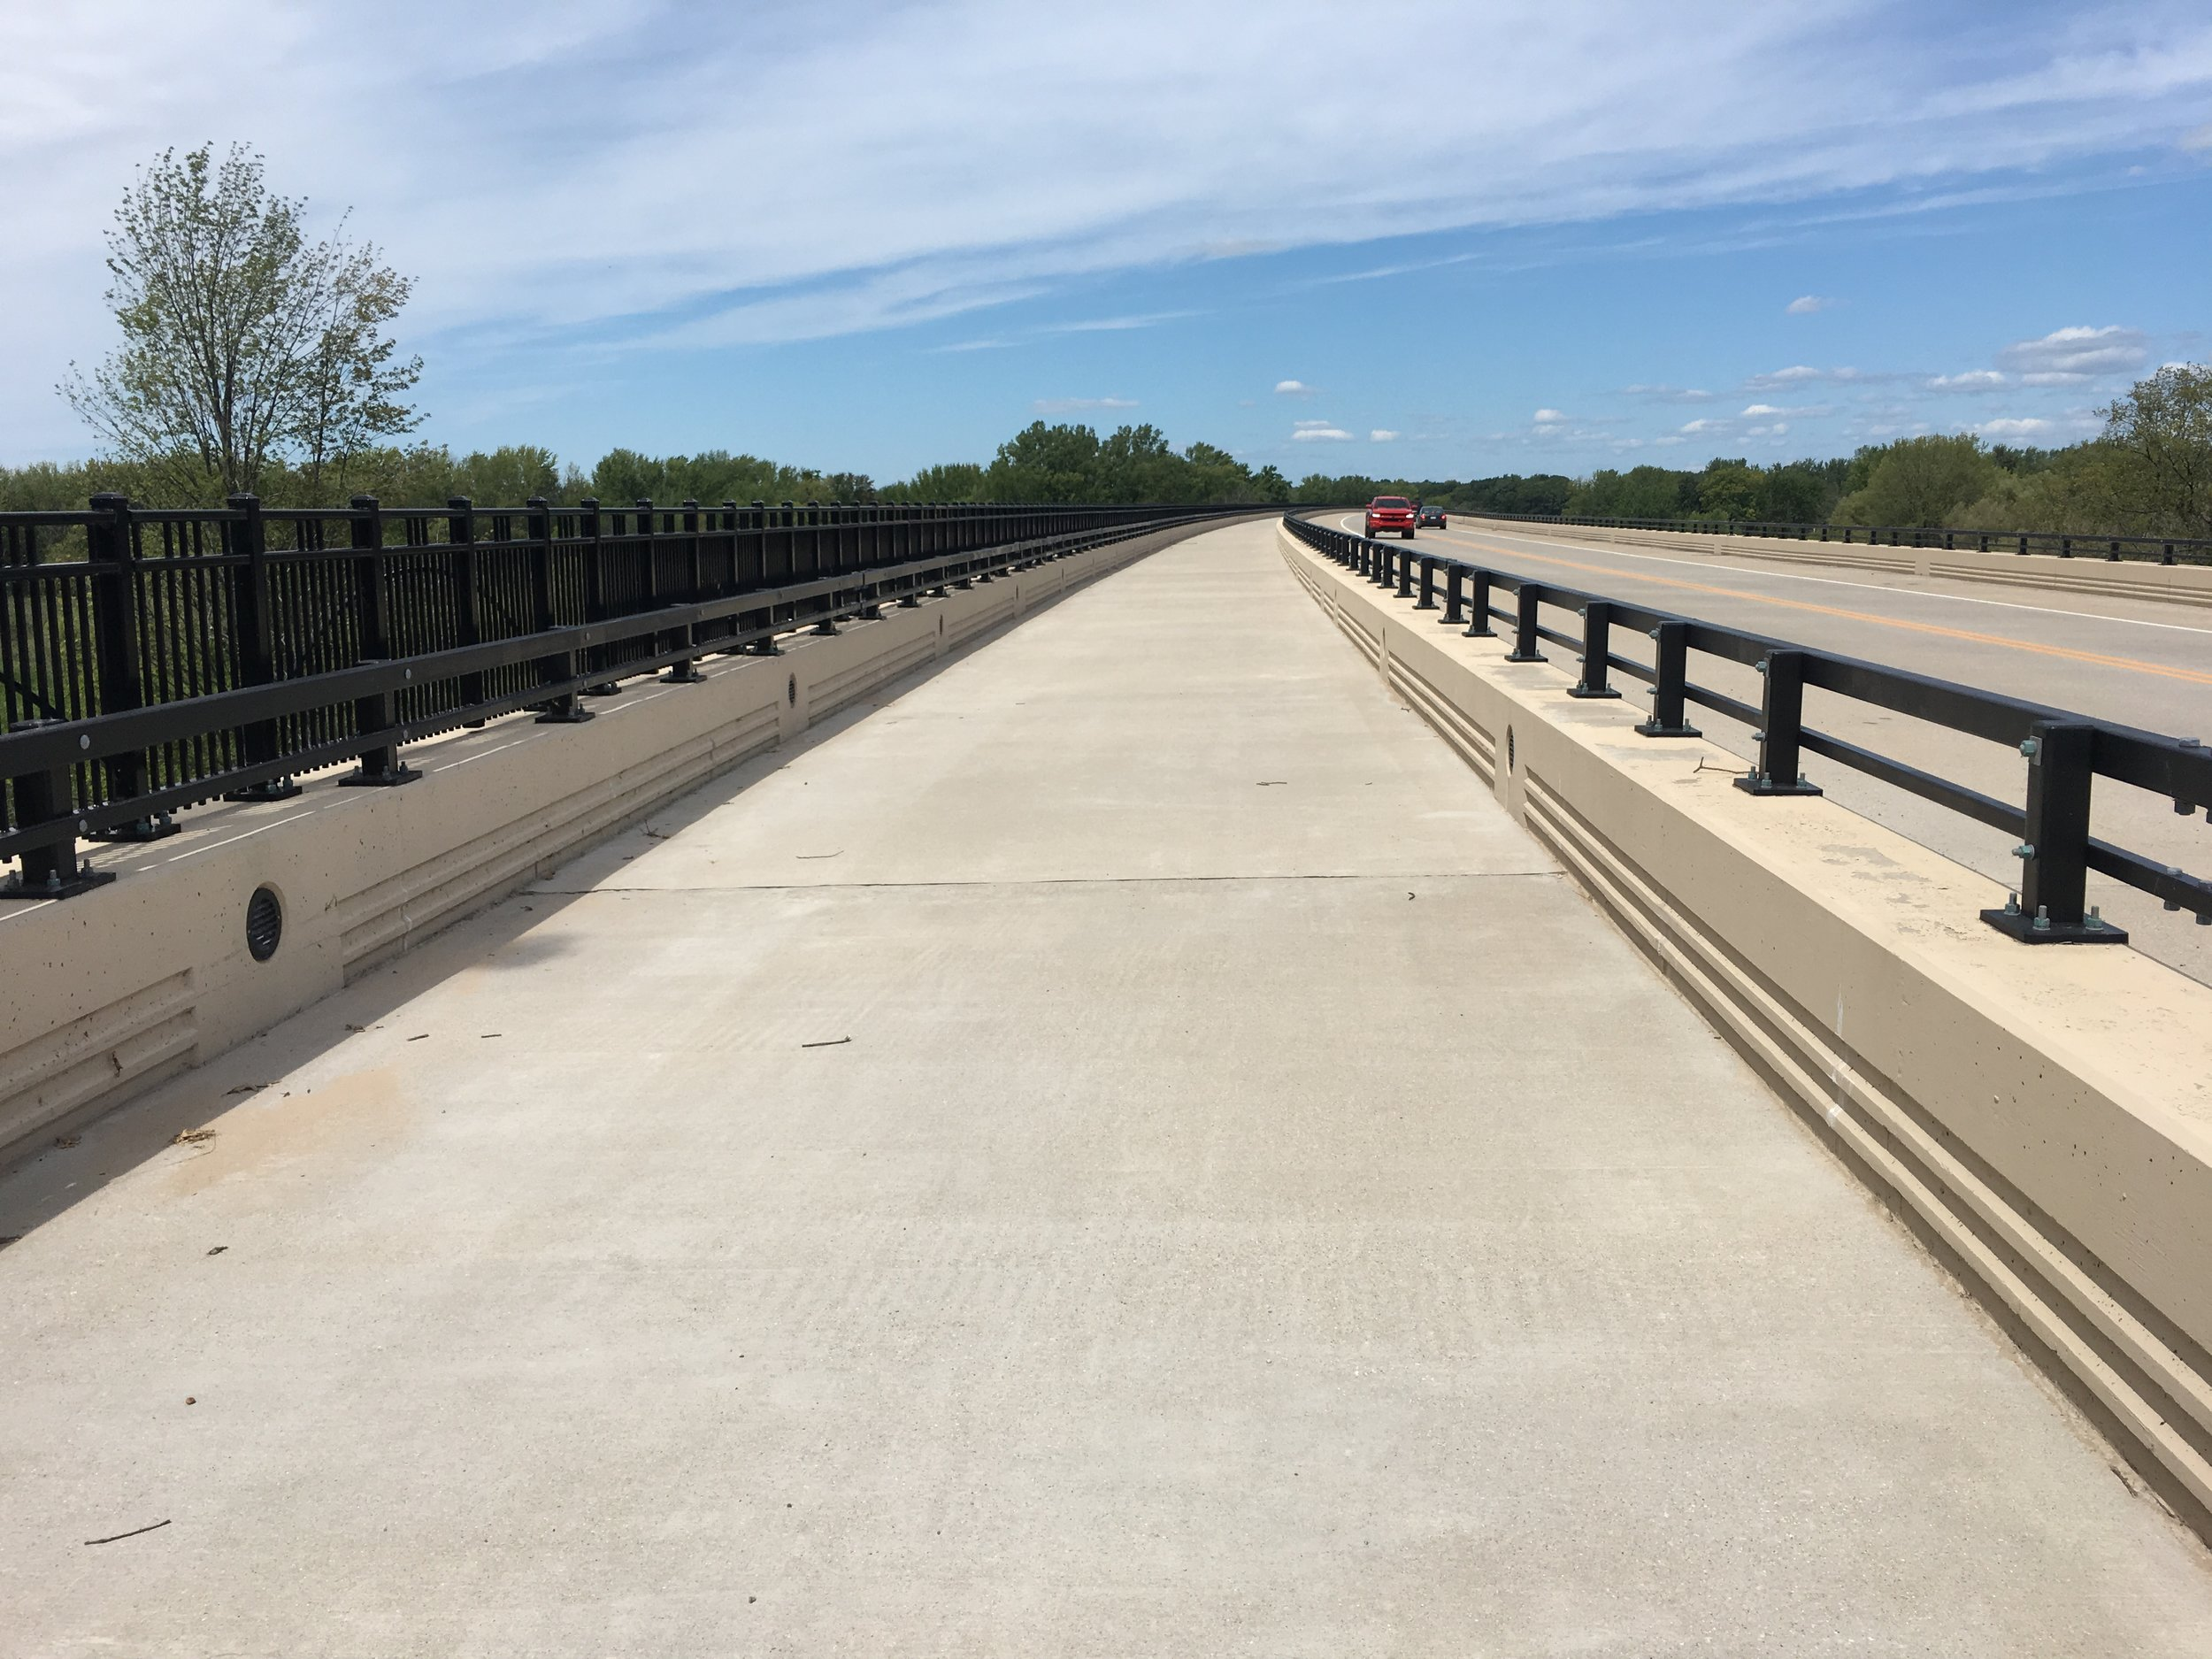 Spoonville Trail over the Grand River. This entire lane is separated from traffic and for bicycles only.